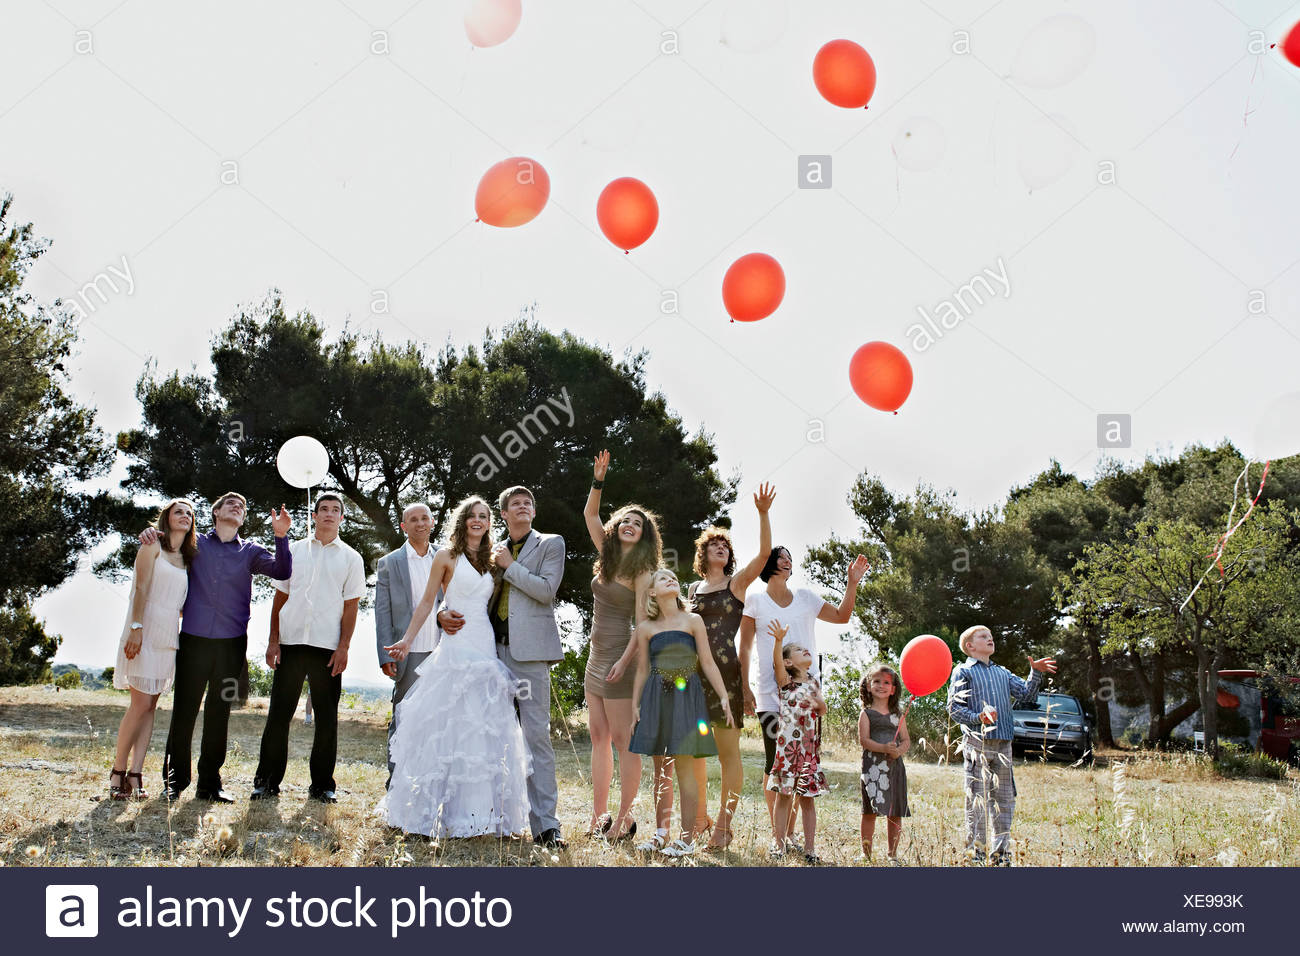 Balloon Ball Inflatable Wedding Groom Bride Wedding Party Union Party